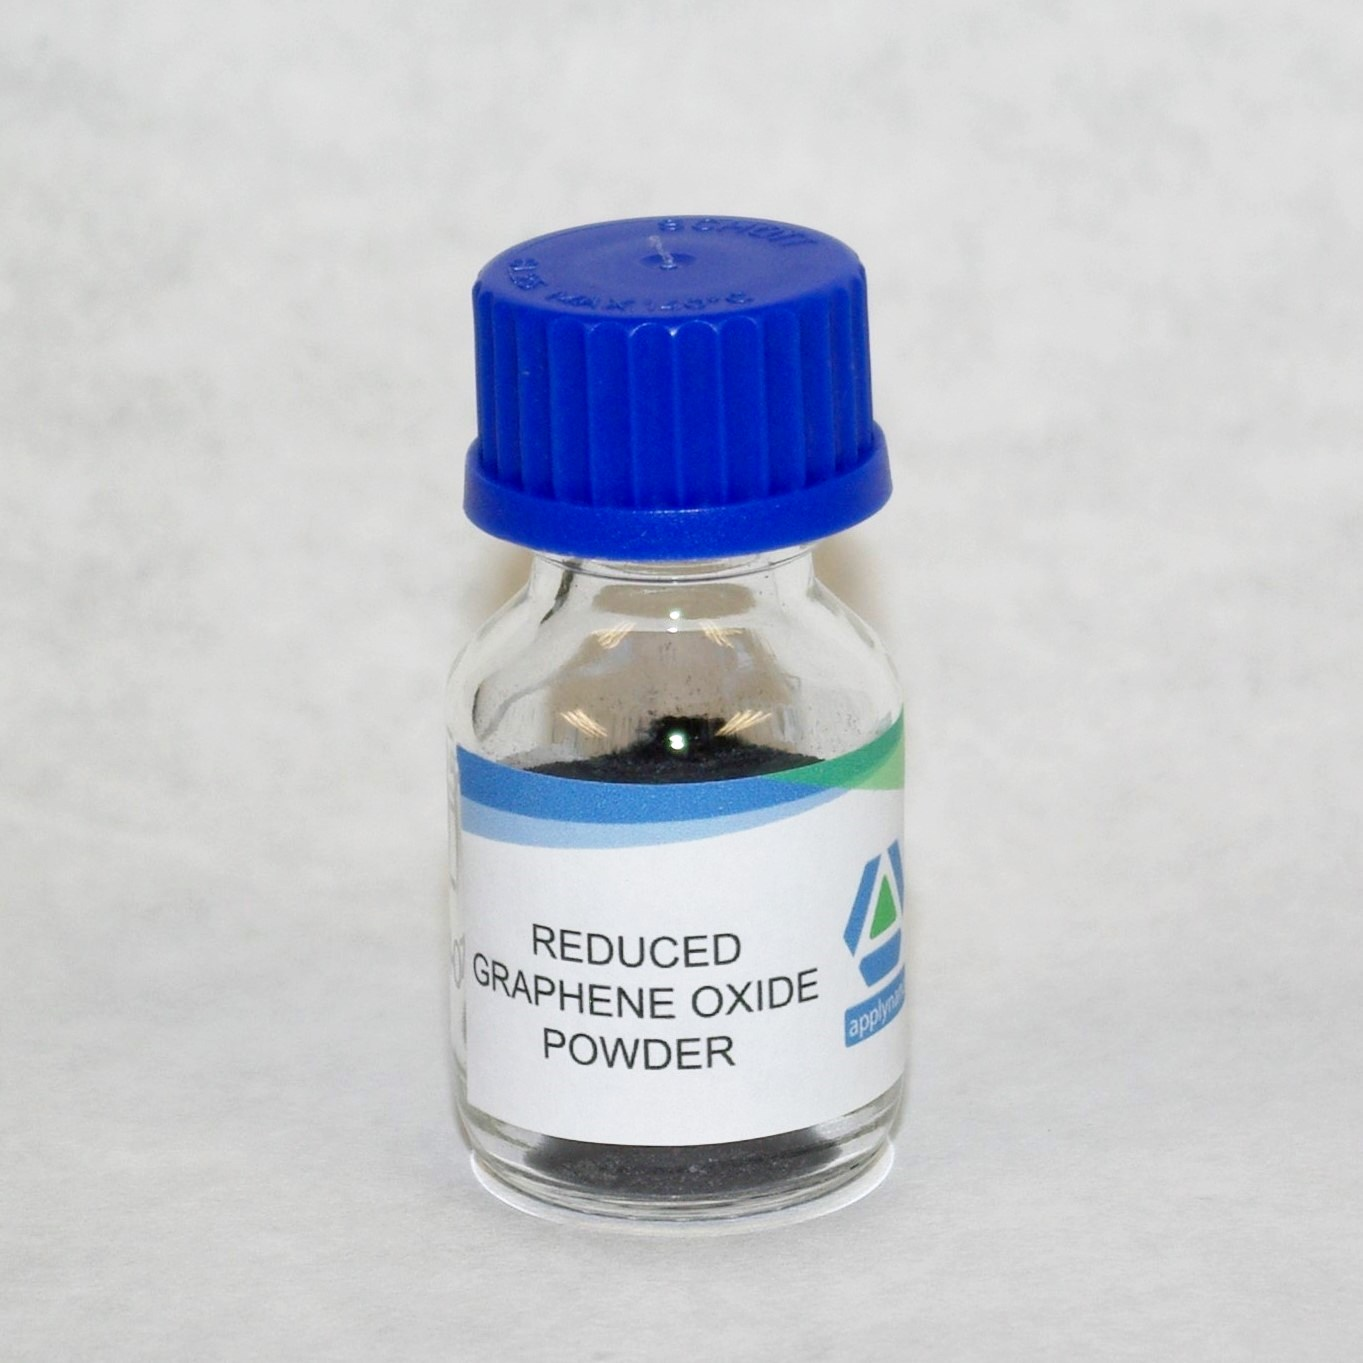 Reduced graphene oxide, powder